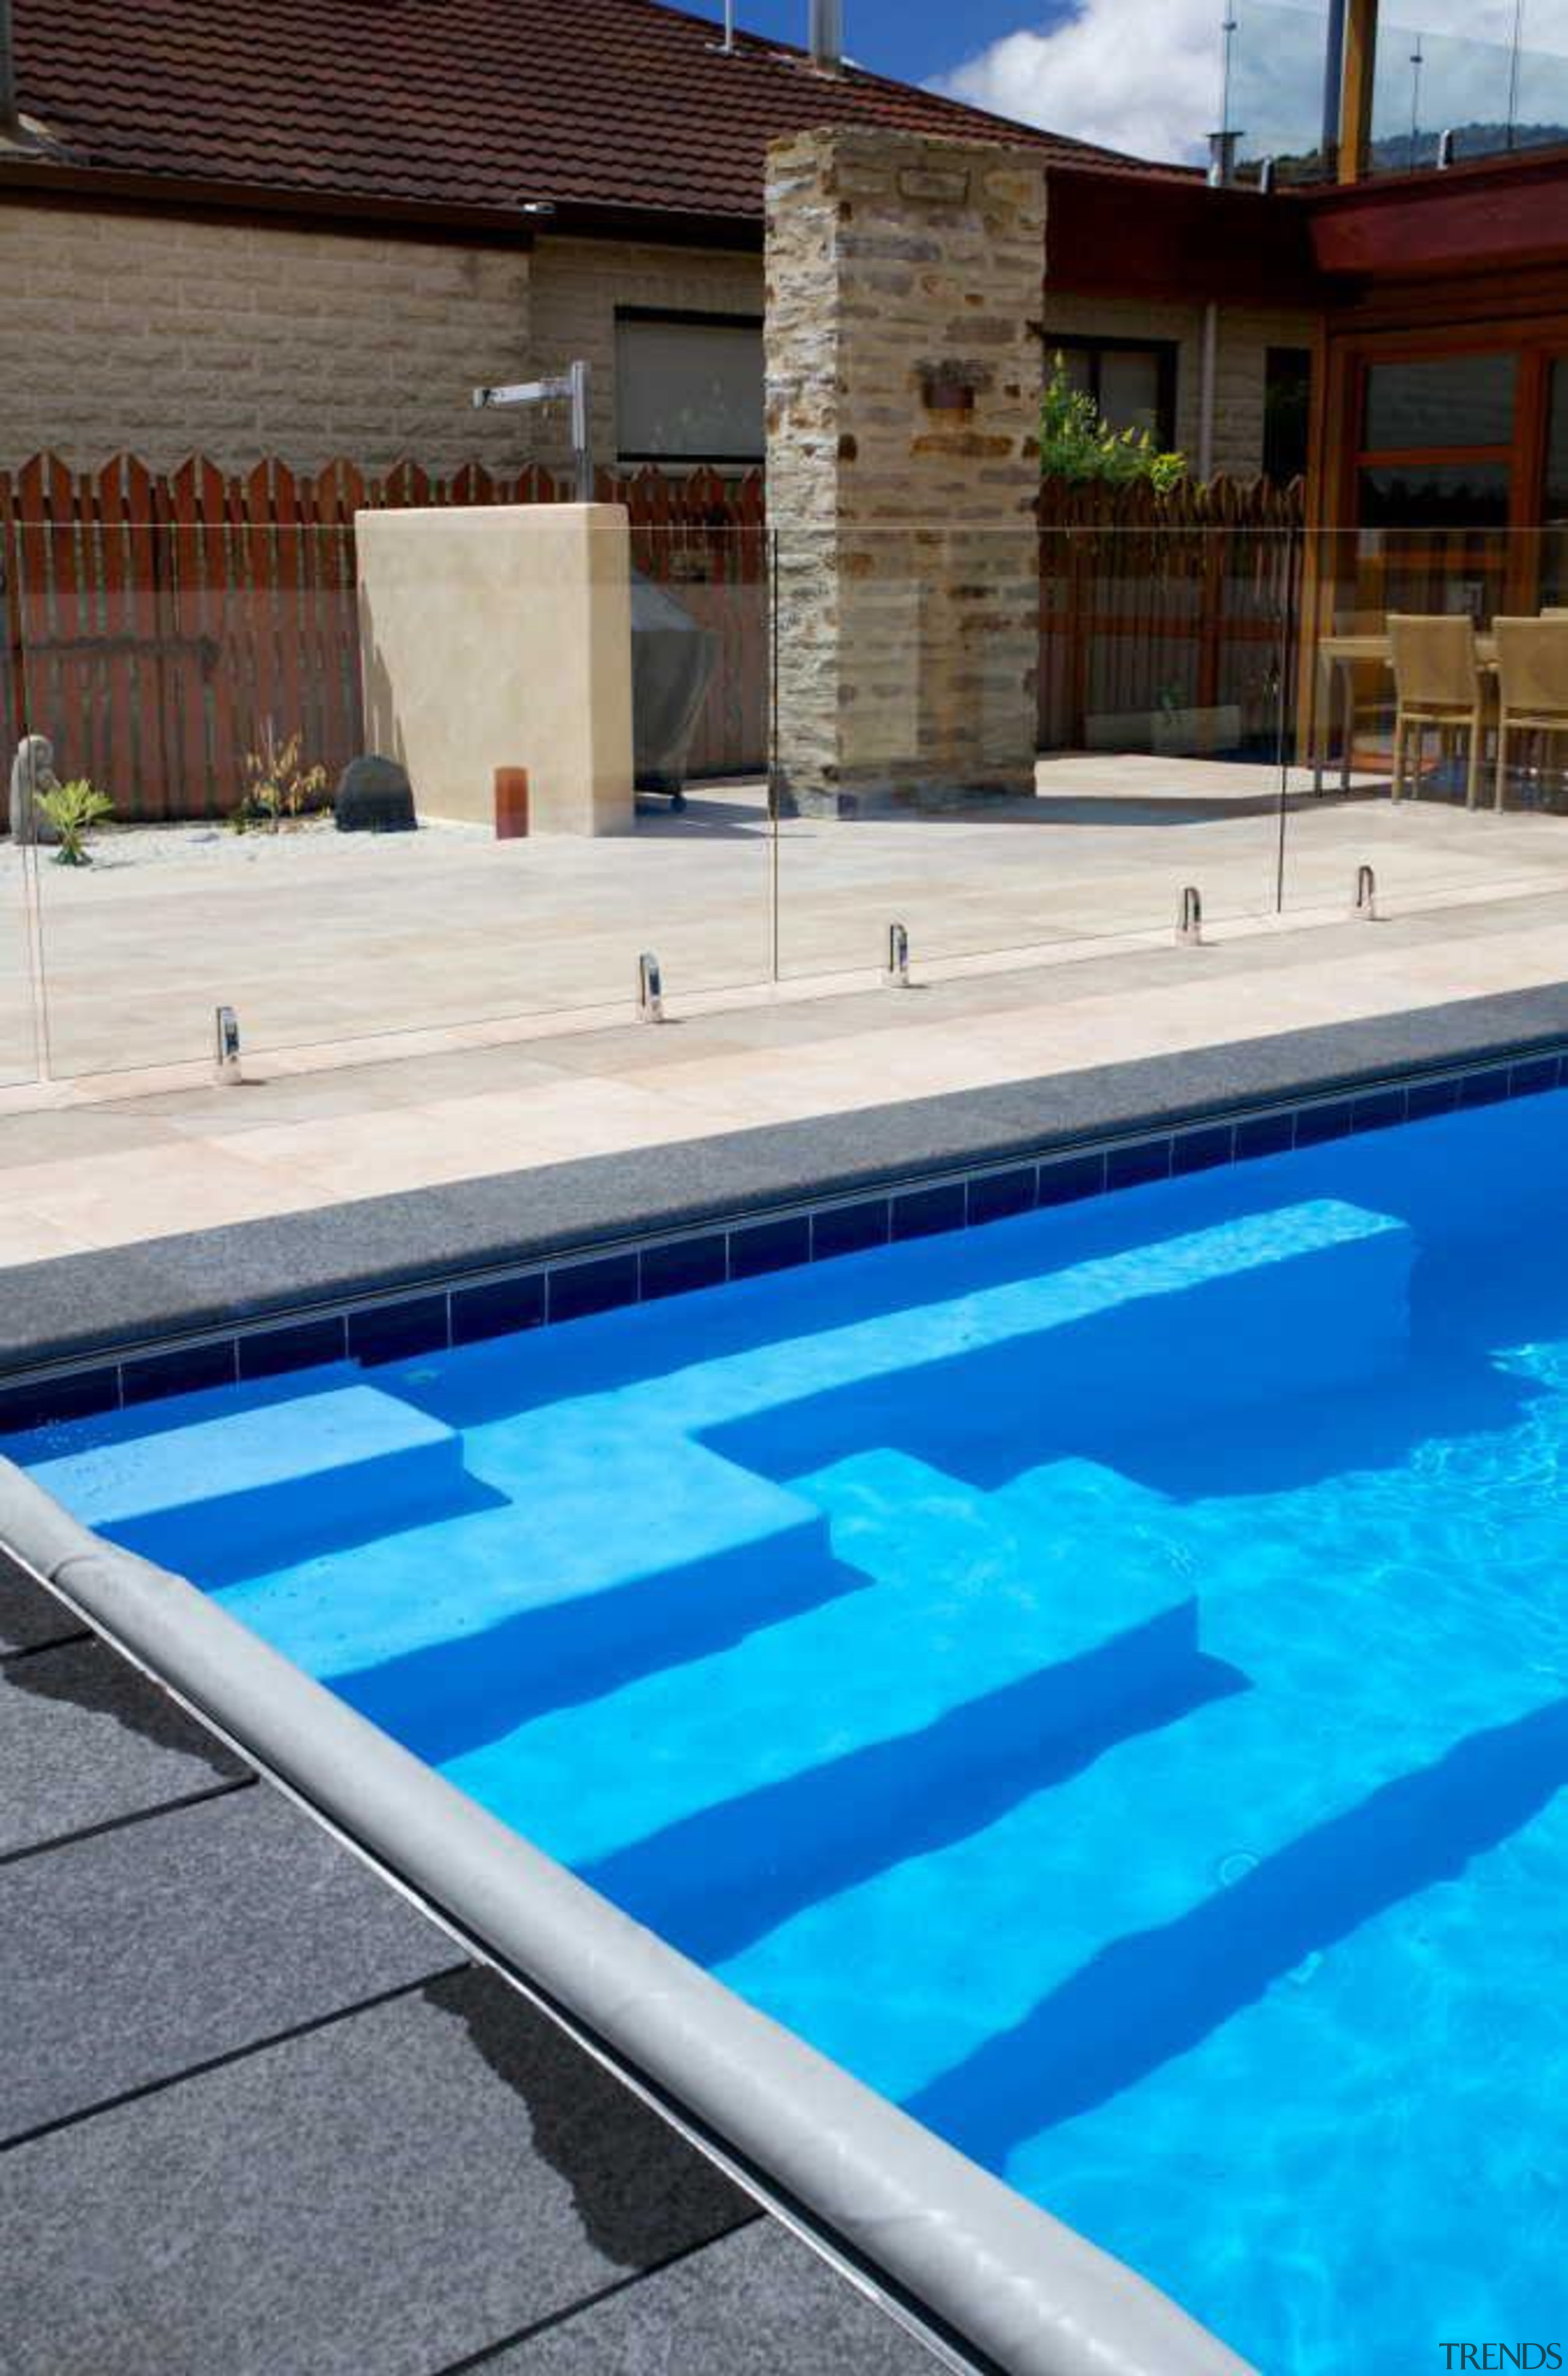 This pool by Mayfair Pools laps against the leisure, leisure centre, pool, swimming pool, water, teal